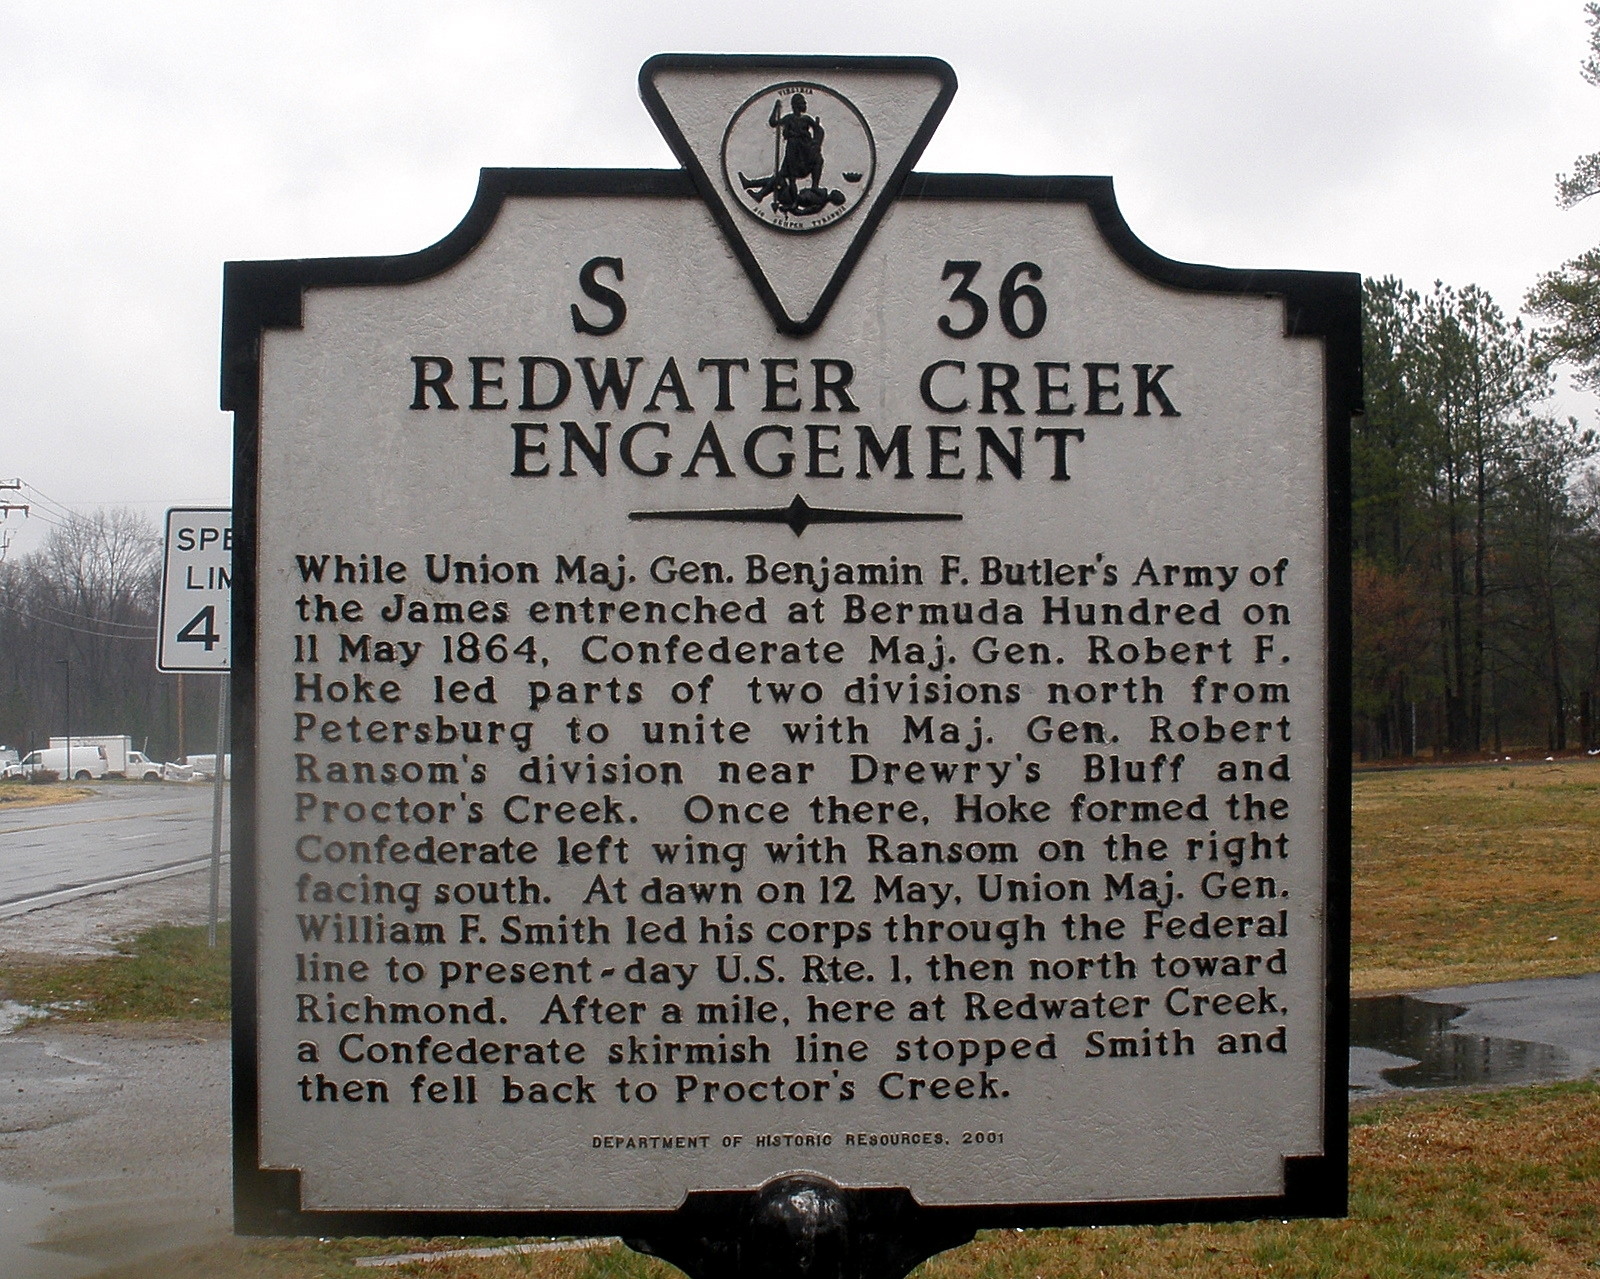 Redwater Creek Engagement Marker